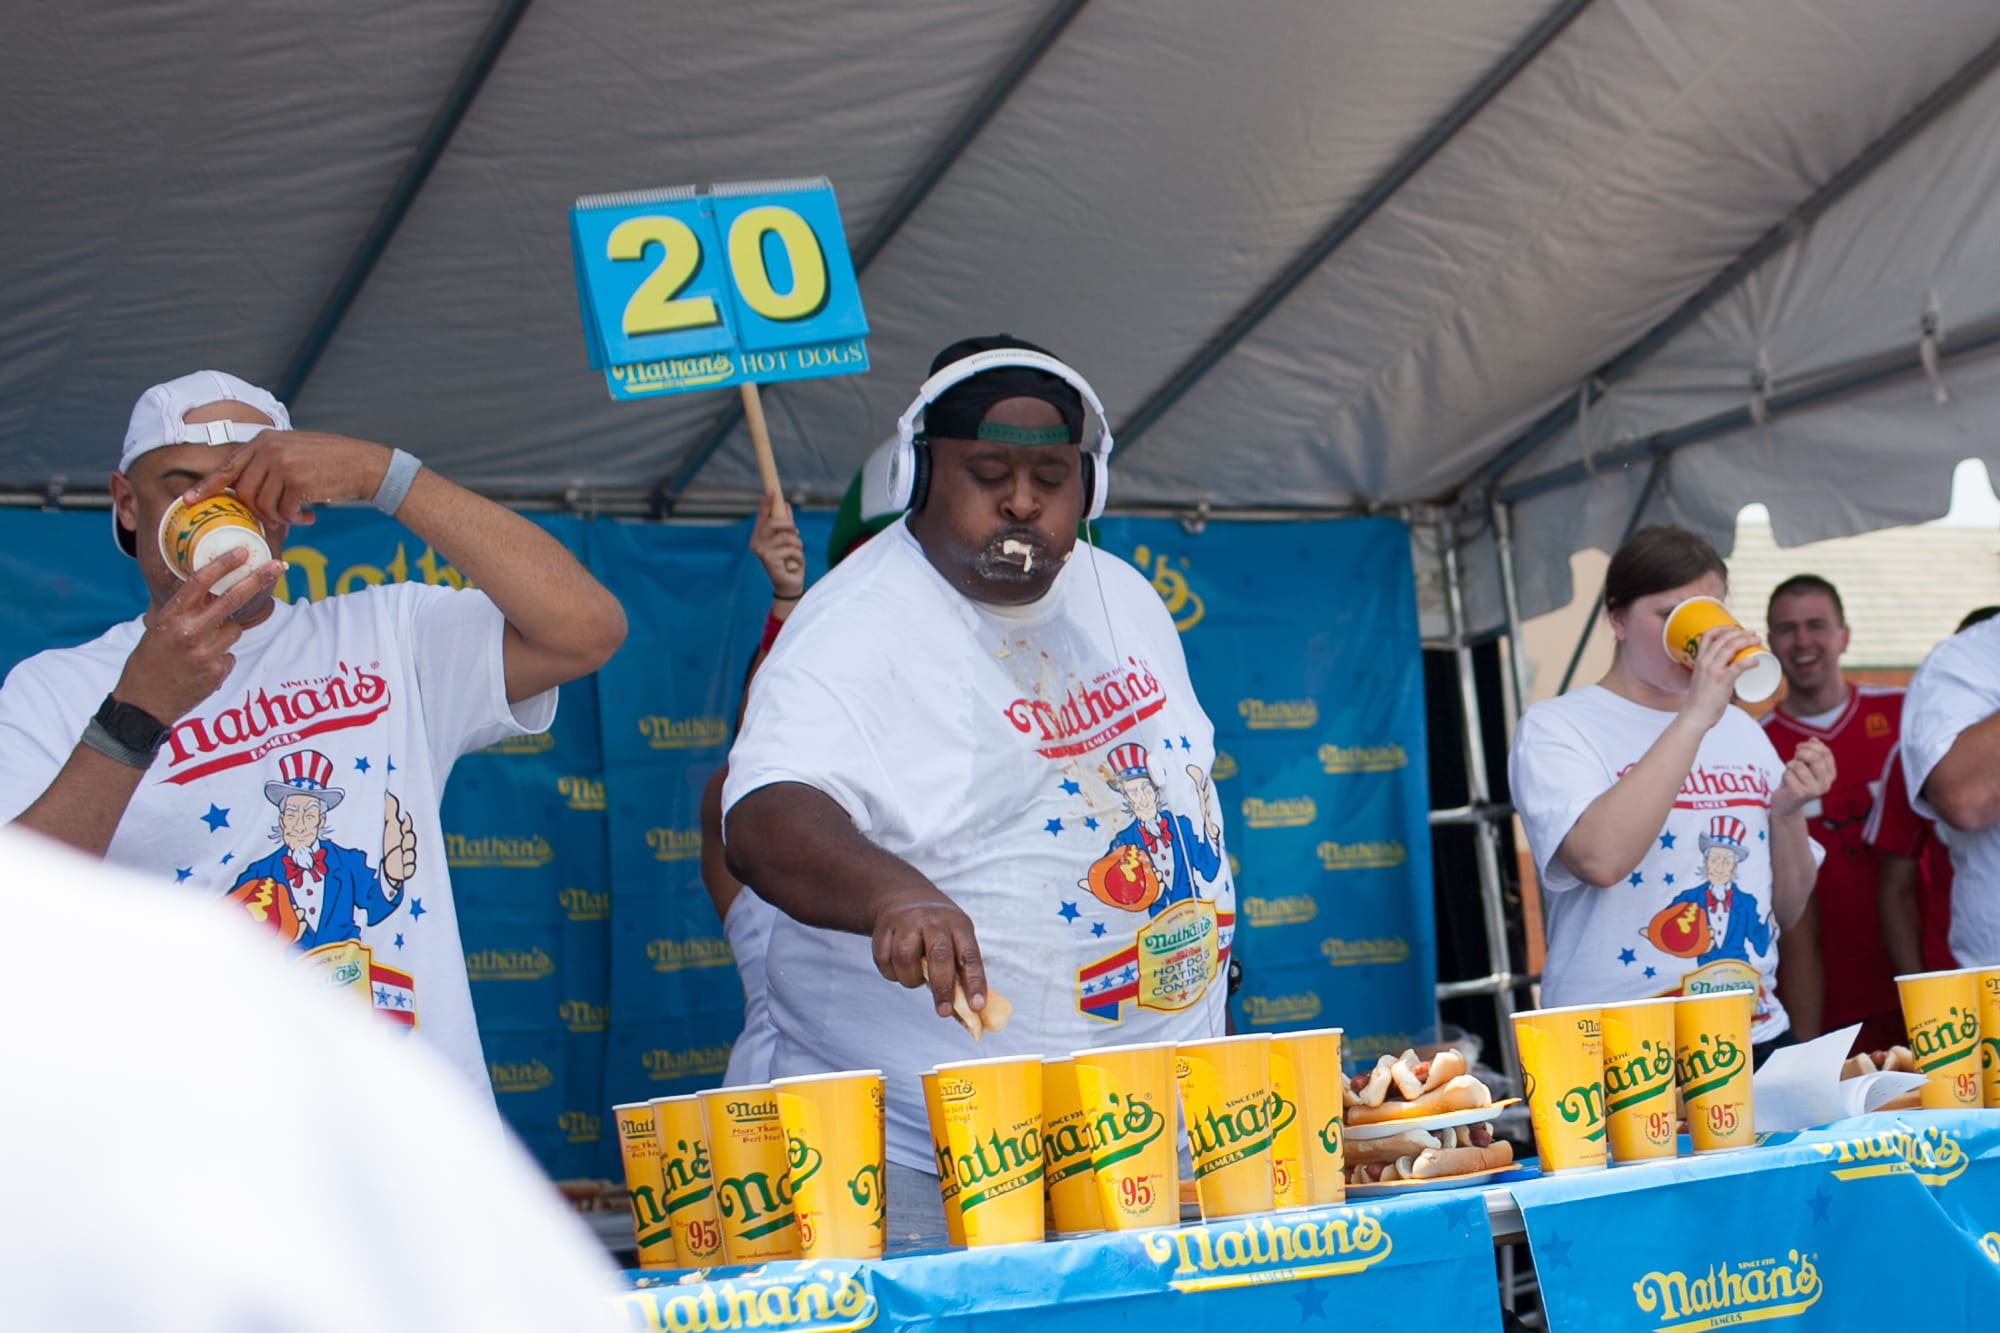 Eric Badland Booker eats at the Nathan's Famous hot dog eating contest qualifier at the Bloomingdale, Illinois, Kmart